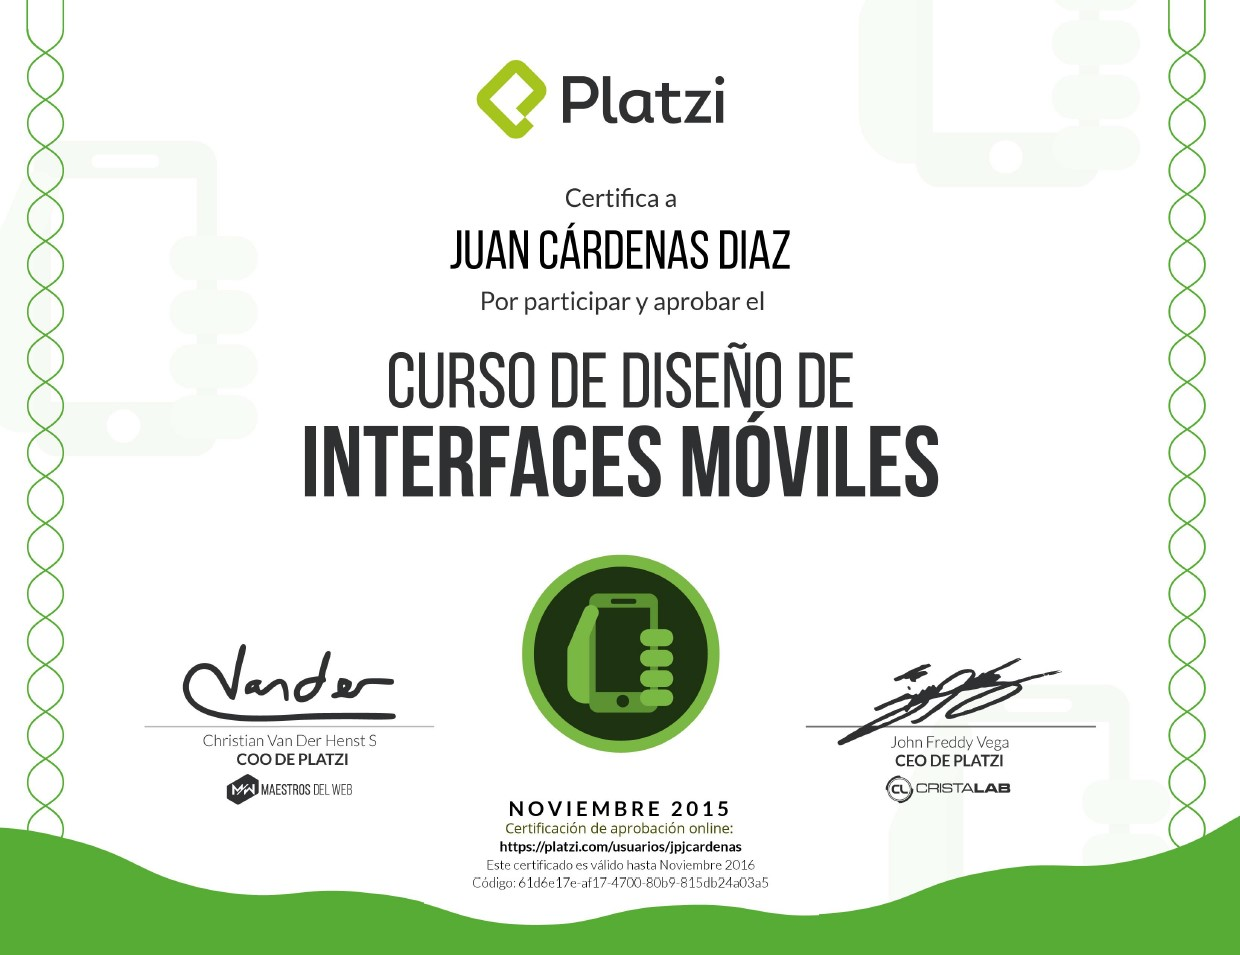 Curso de Diseño de Interfaces Móviles